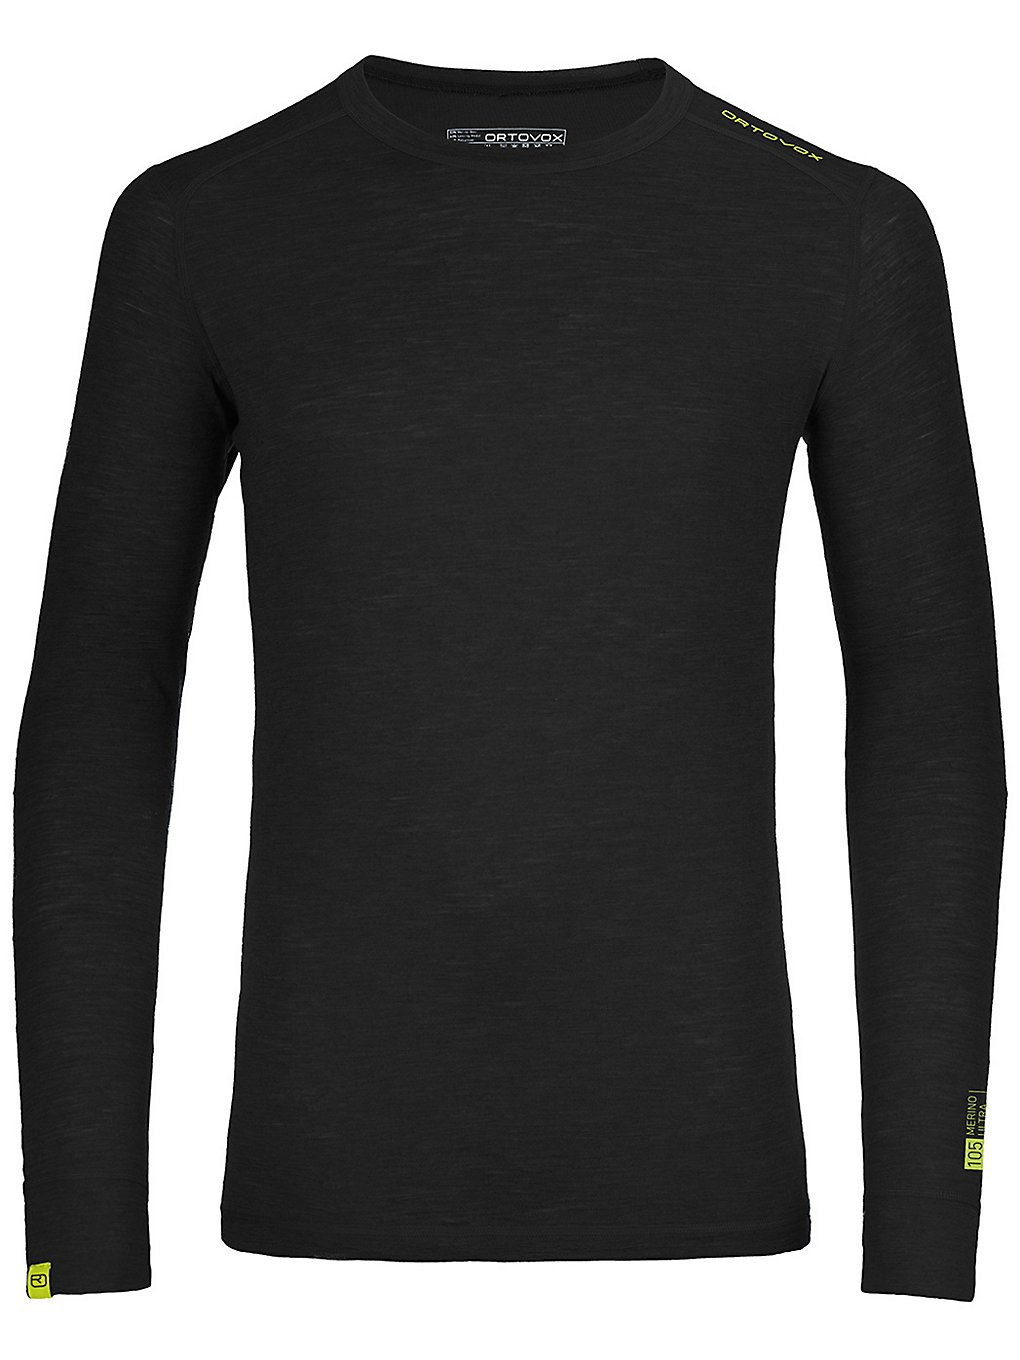 Ortovox 105 Ultra Tech Tee LS black raven